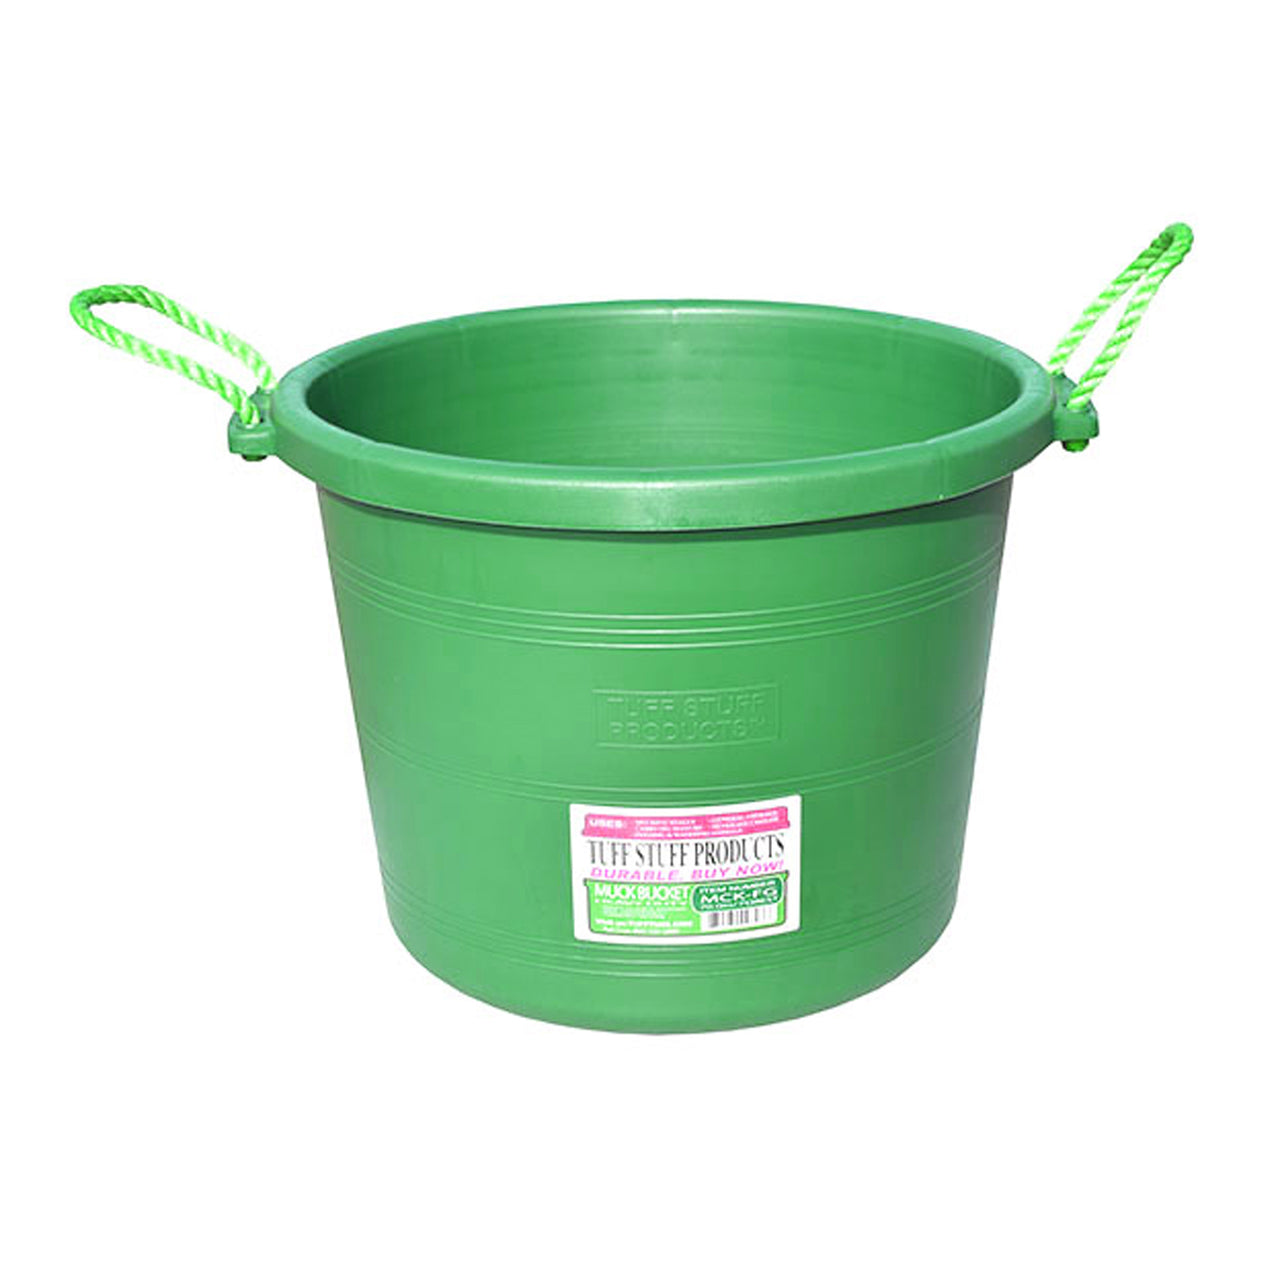 Tuff Stuff Muck Bucket 70 Qts - Lima - Buckets Pails Feeders Scoops Tubs Bottles Tuff Stuff - Canada